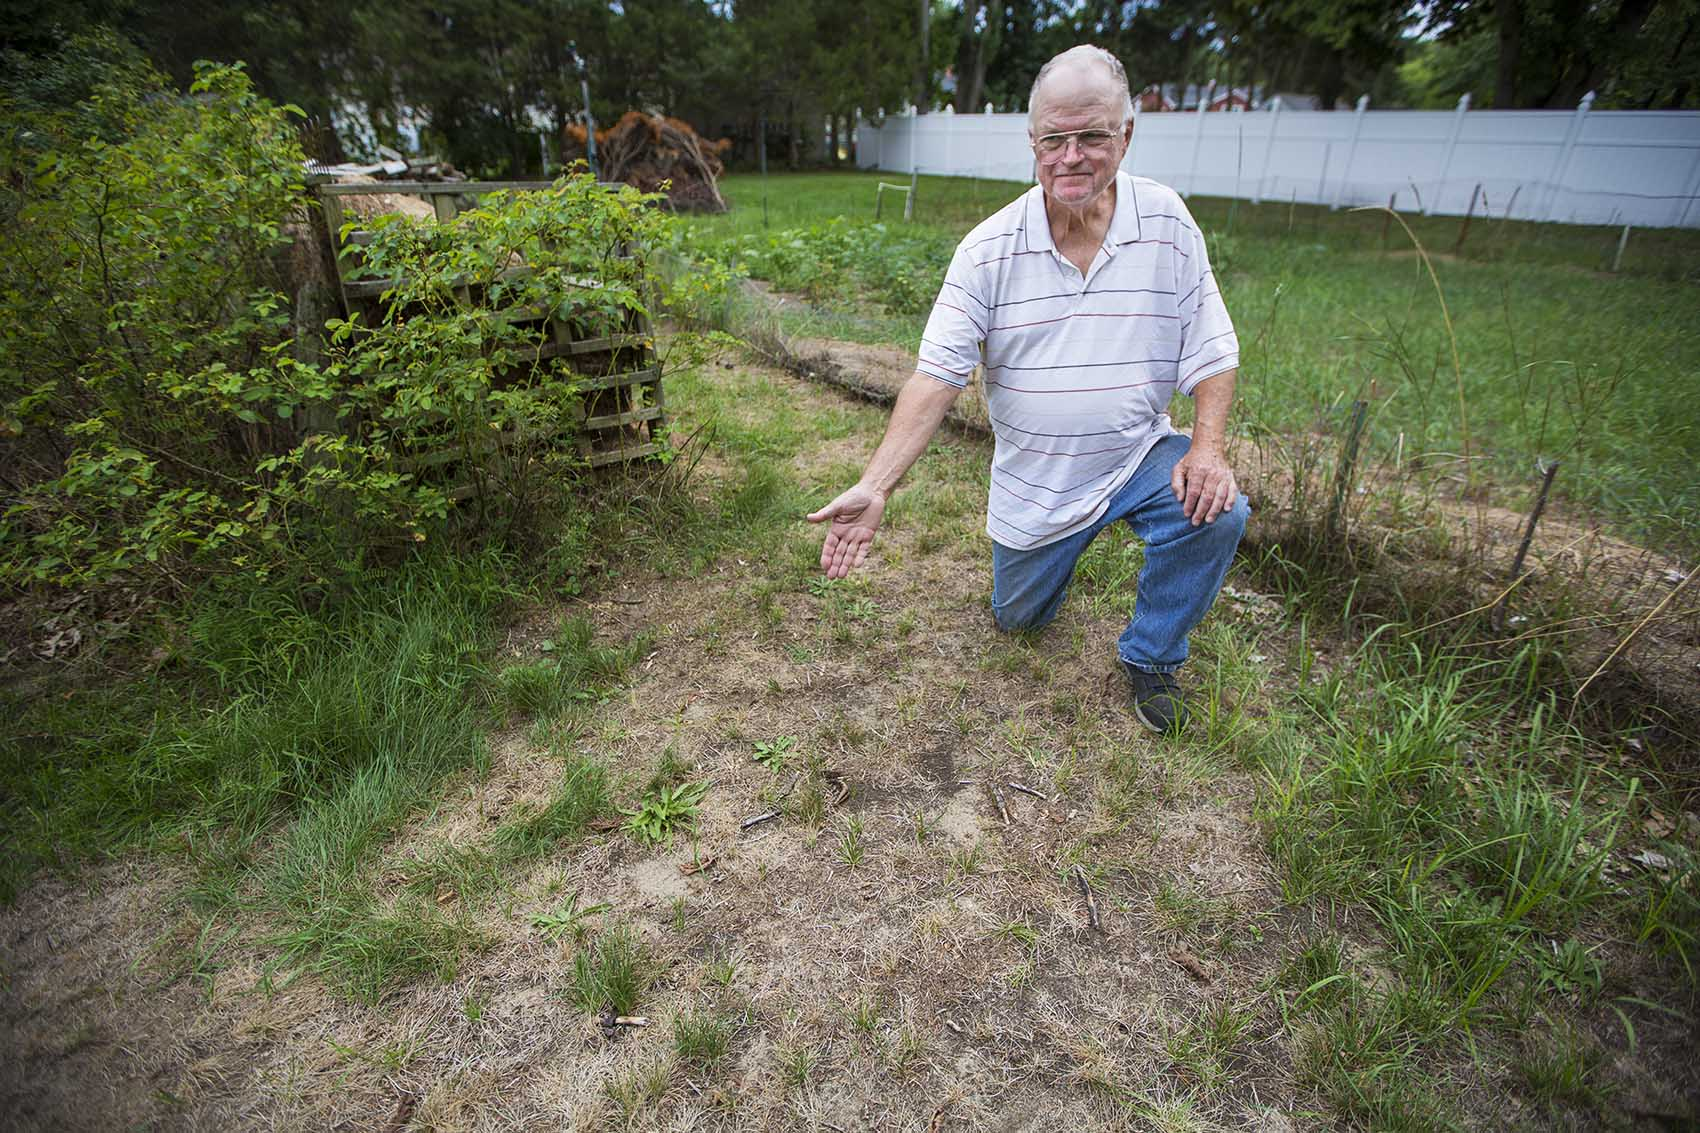 Fifty-year Billerica resident Tim Hinde displays his dried-out lawn, which he cannot water because of town restrictions on watering plants due to the summer drought conditions. (Jesse Costa/WBUR)